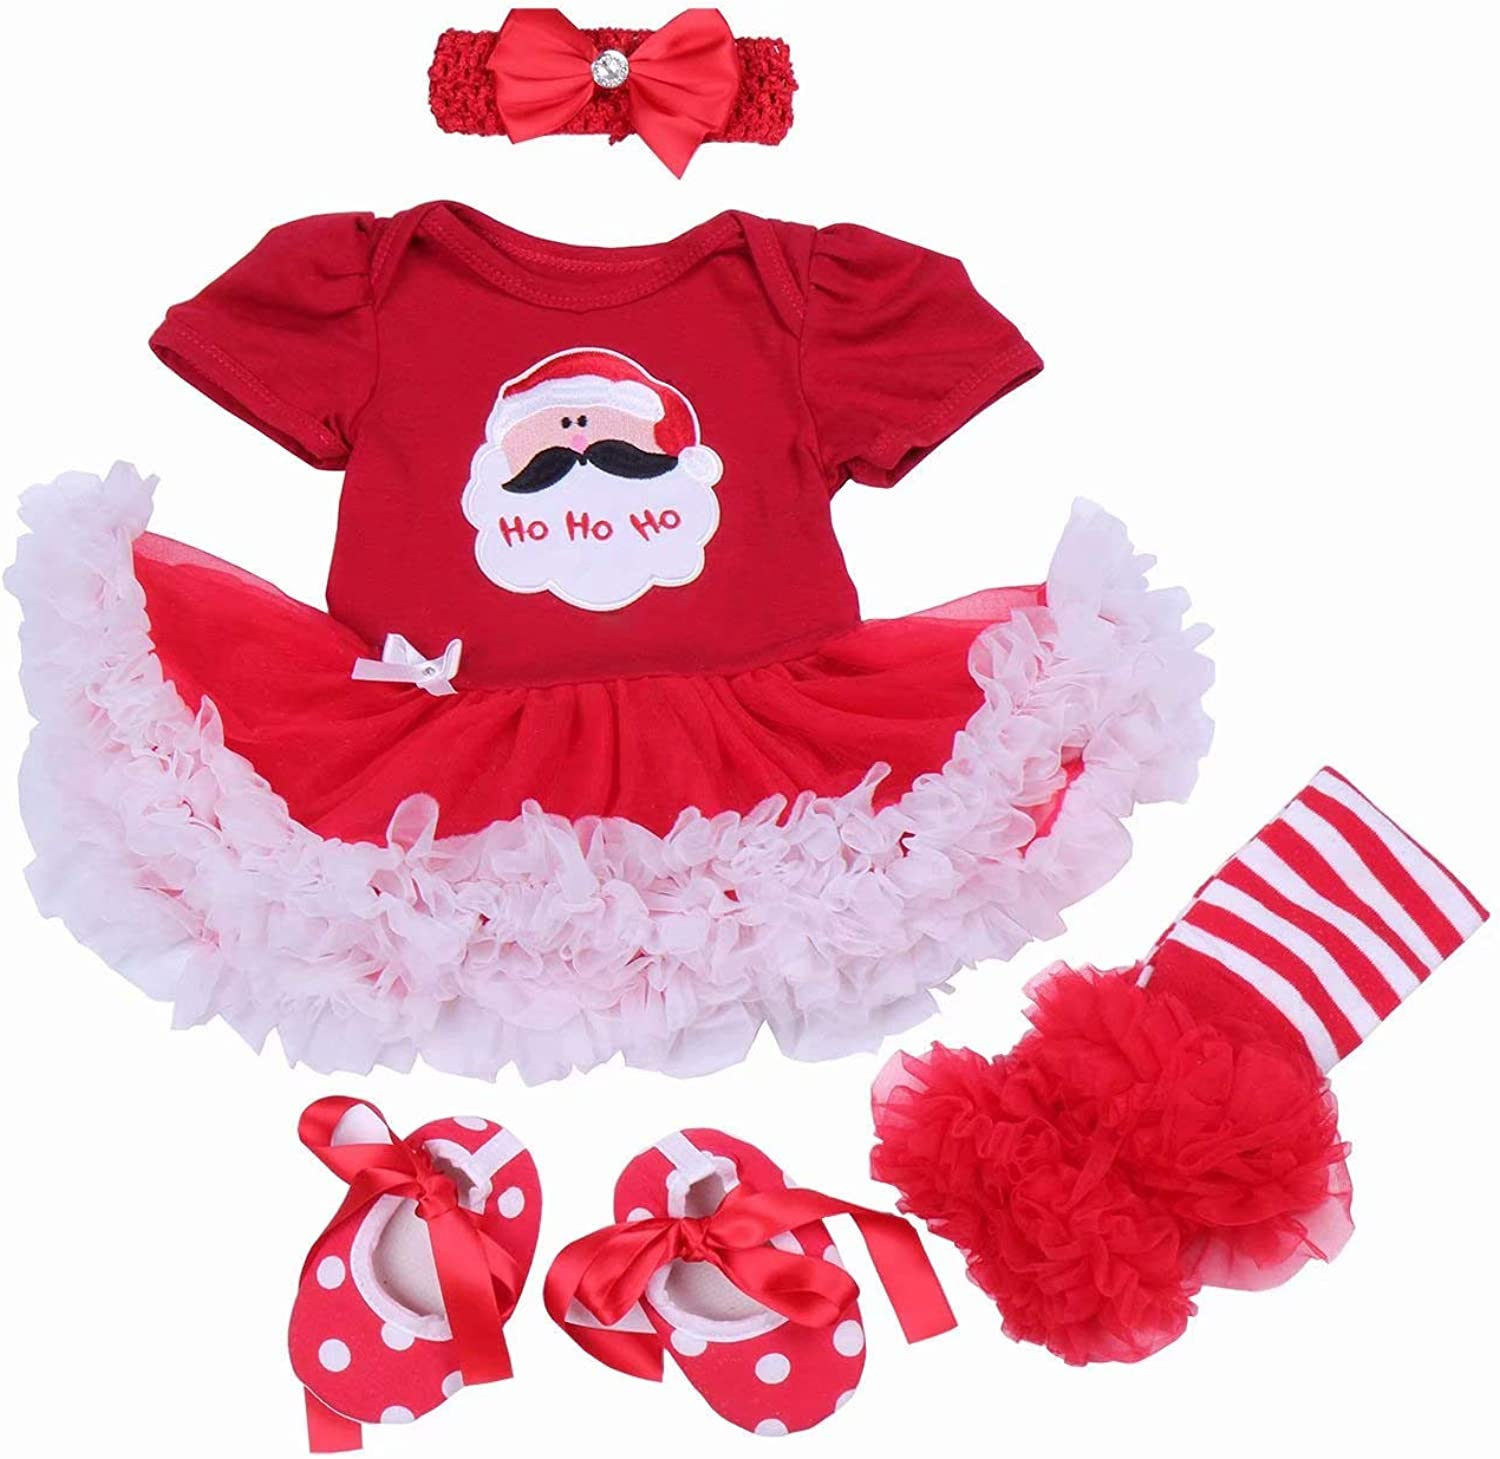 Baby shower Christmas photo prop Baby Christmas outfit Baby girl clothes Baby gift Santa baby Chirstmas baby Red baby poncho